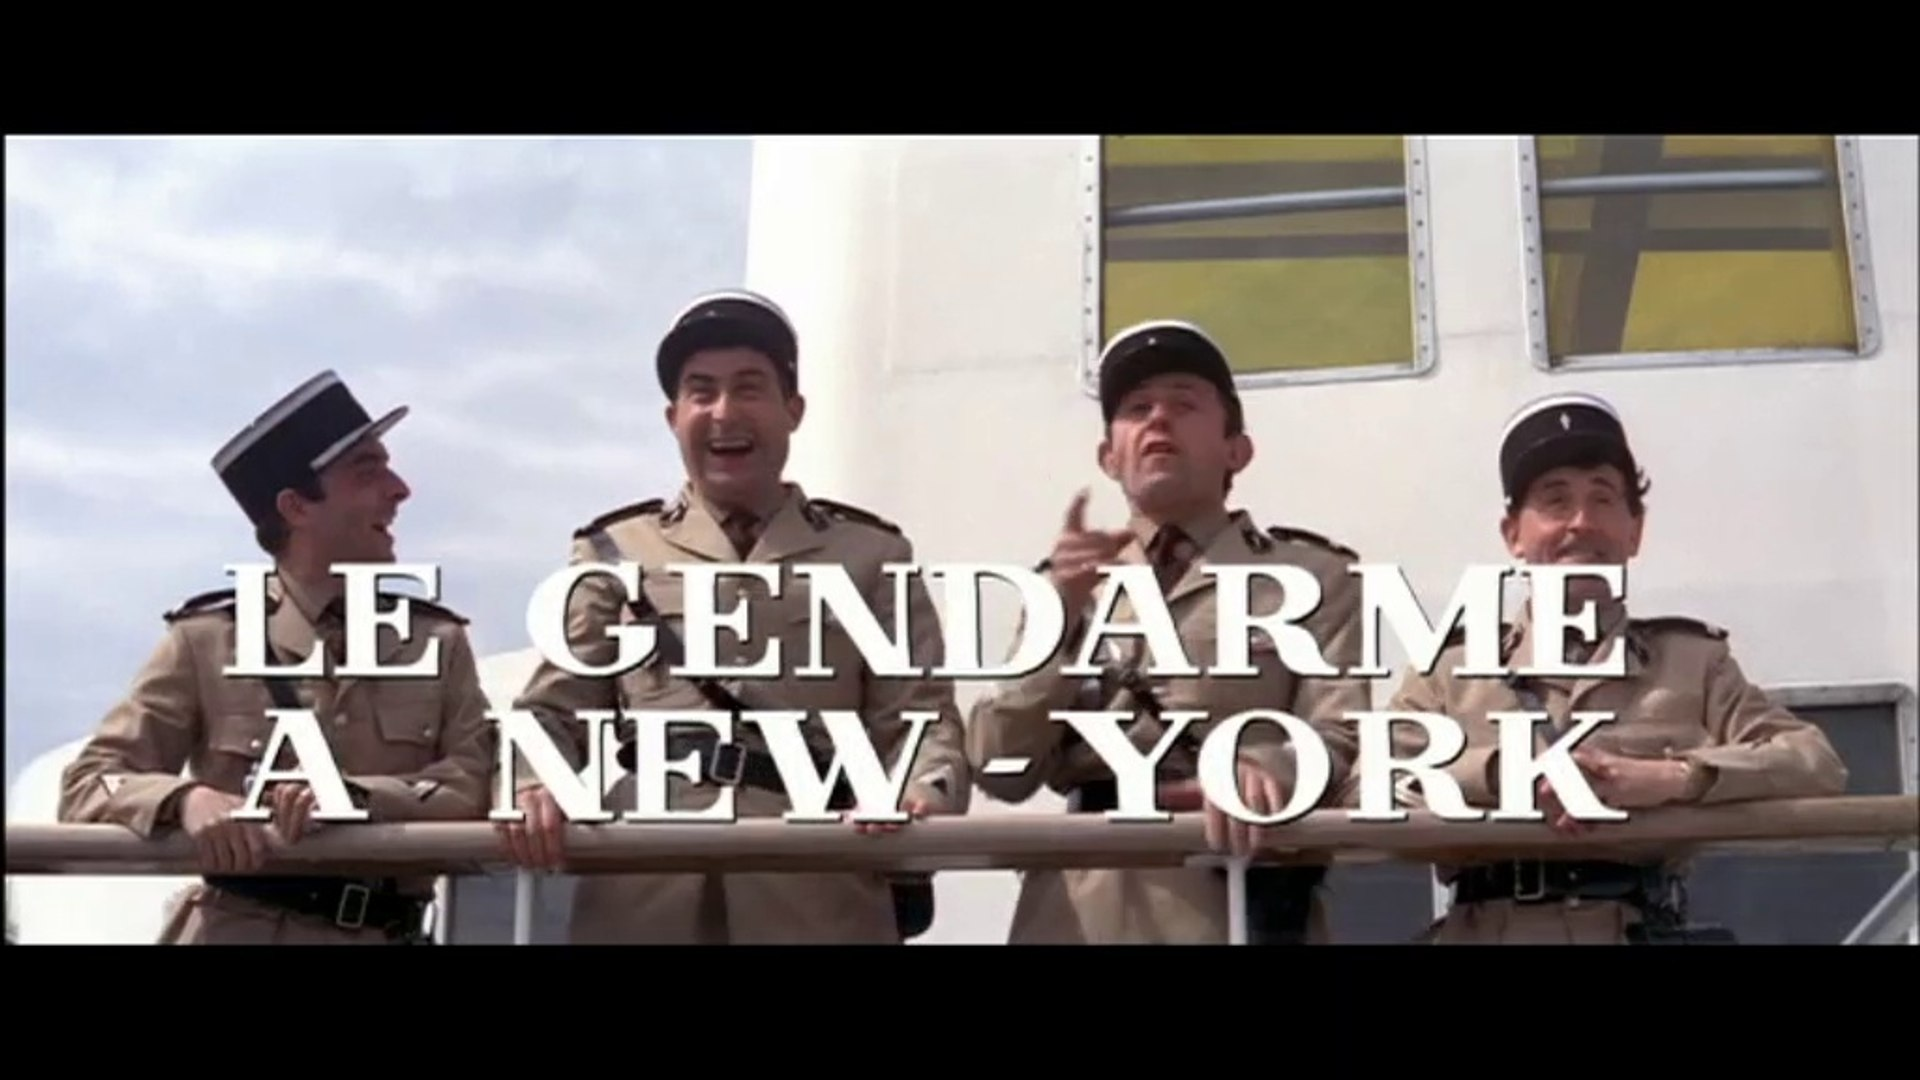 Le Gendarme à New York (Bande annonce - Trailer VF Movies Version 1965) HD - HQ - 16.9